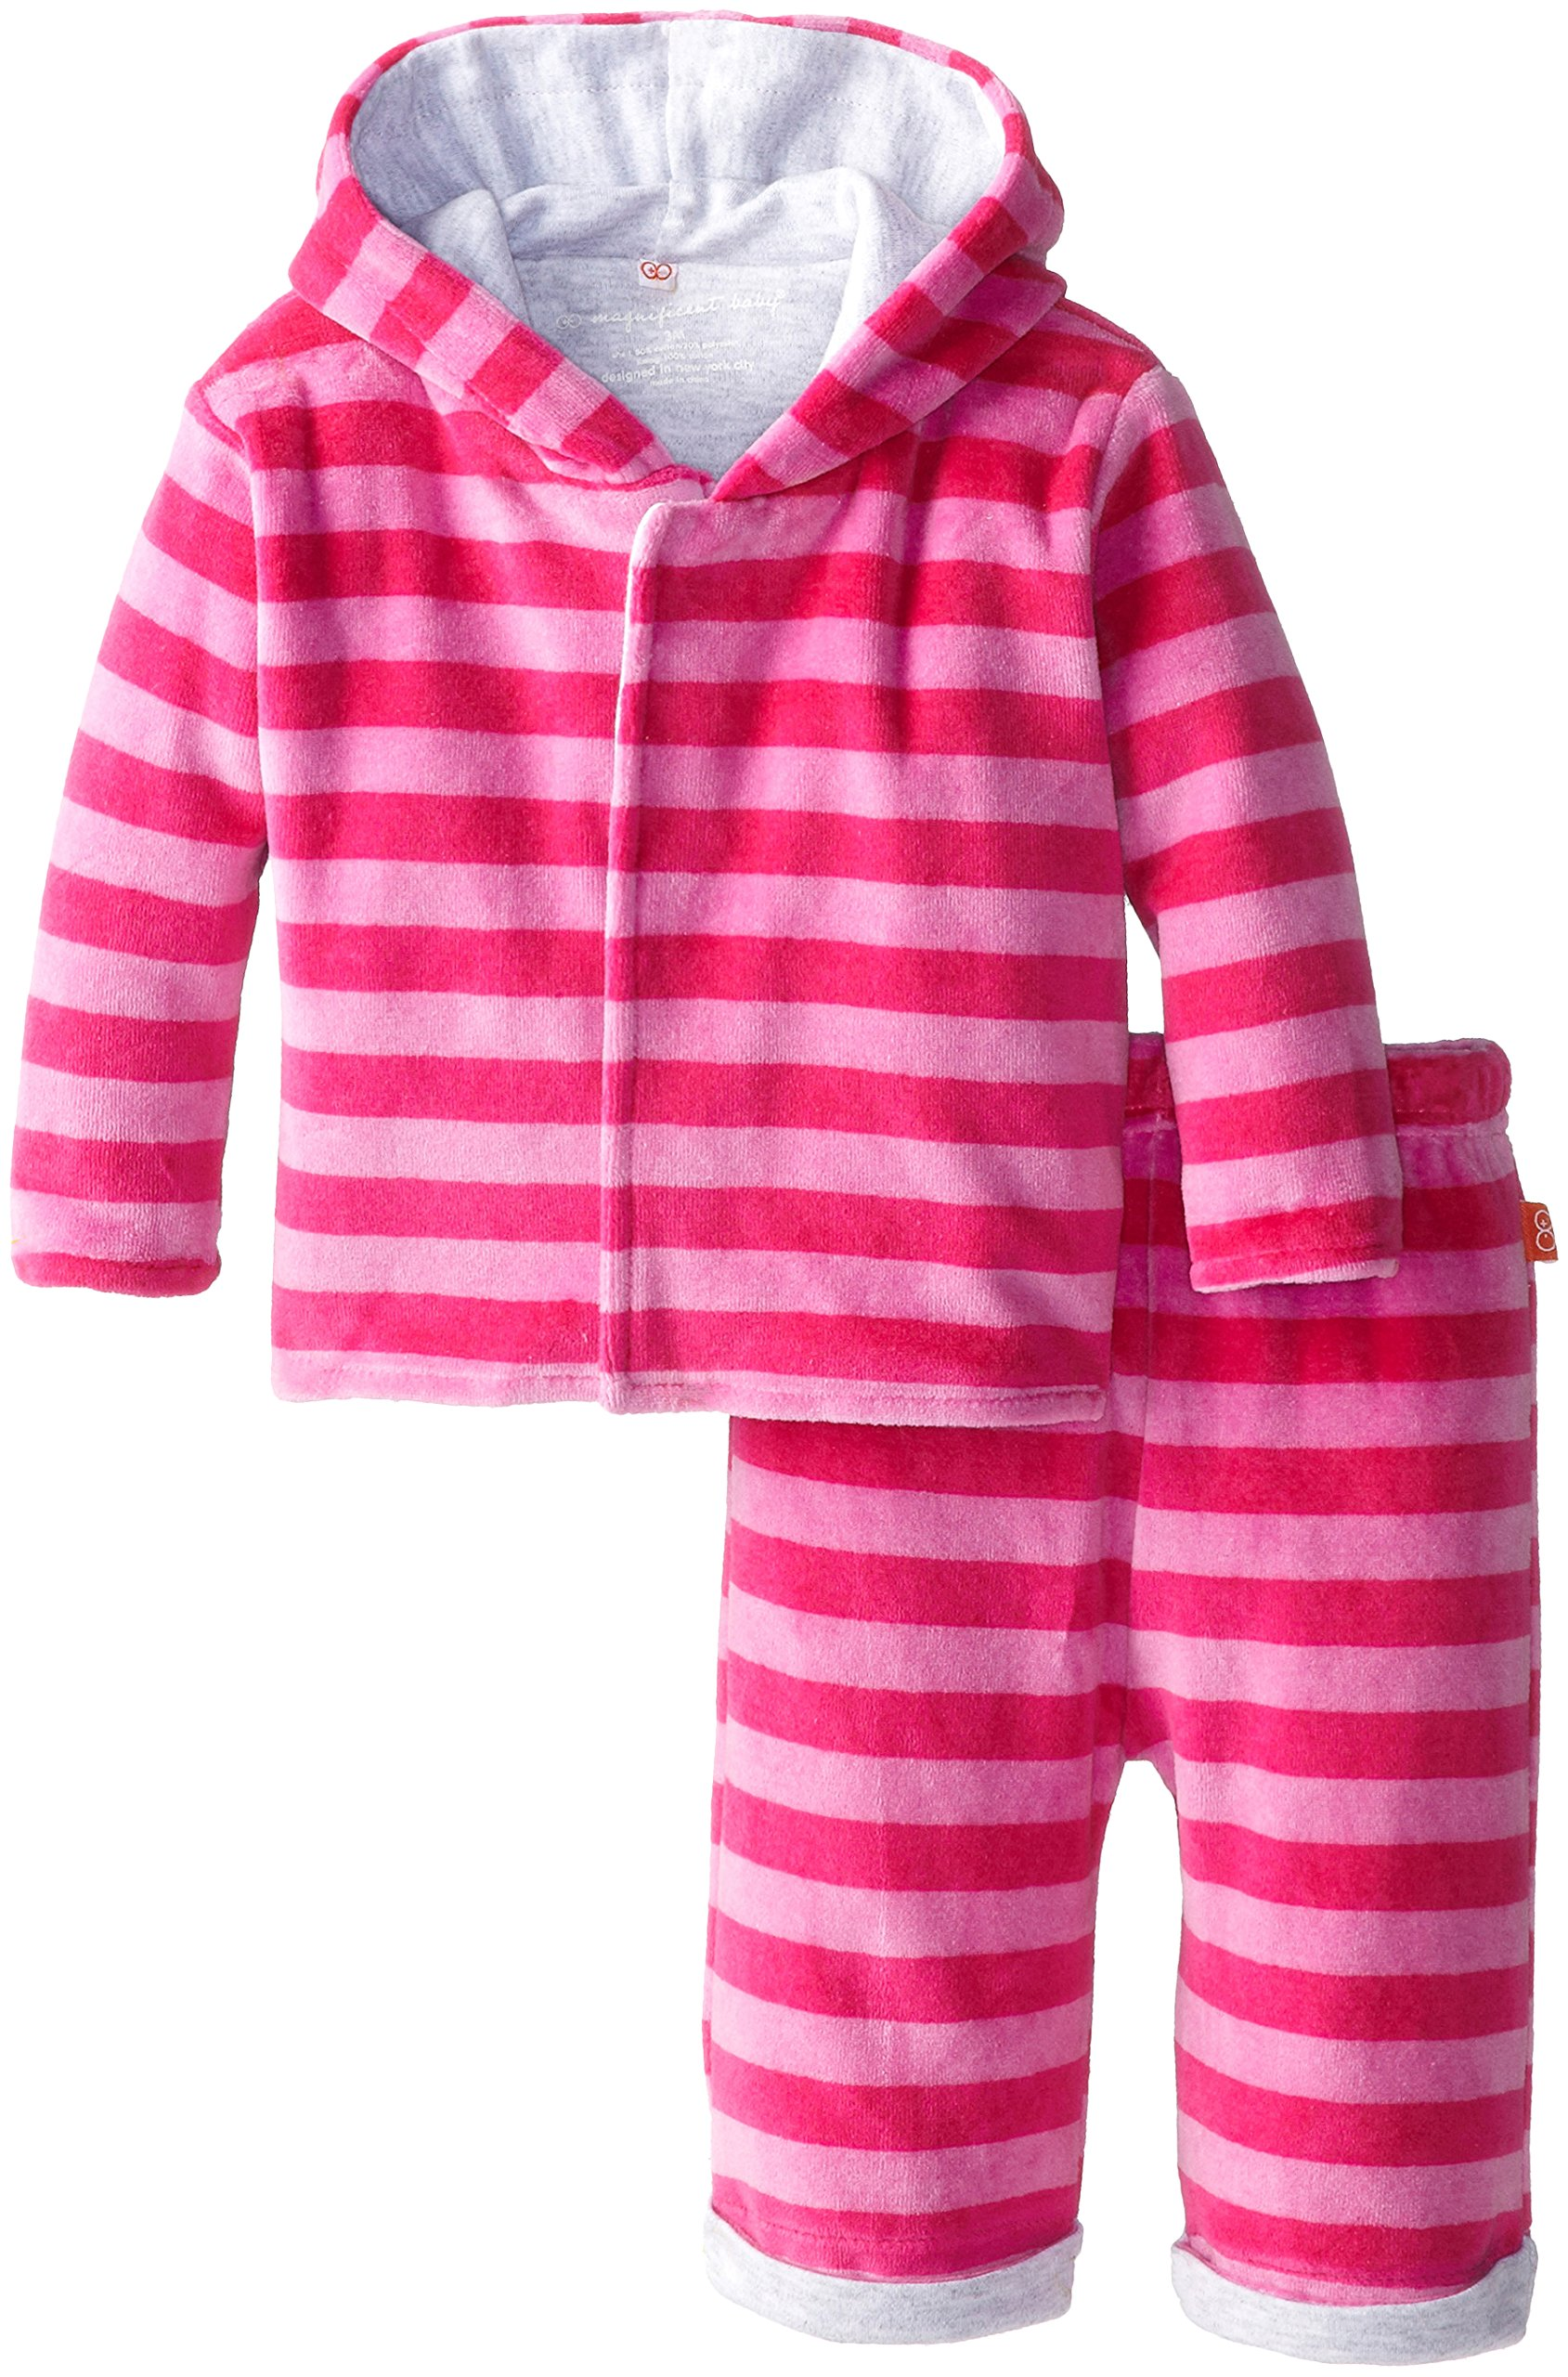 Magnificent Baby Baby Girls' Berry Velour Hoodie and Pants, Hot Pink/Berry, 9 Months by Magnificent Baby